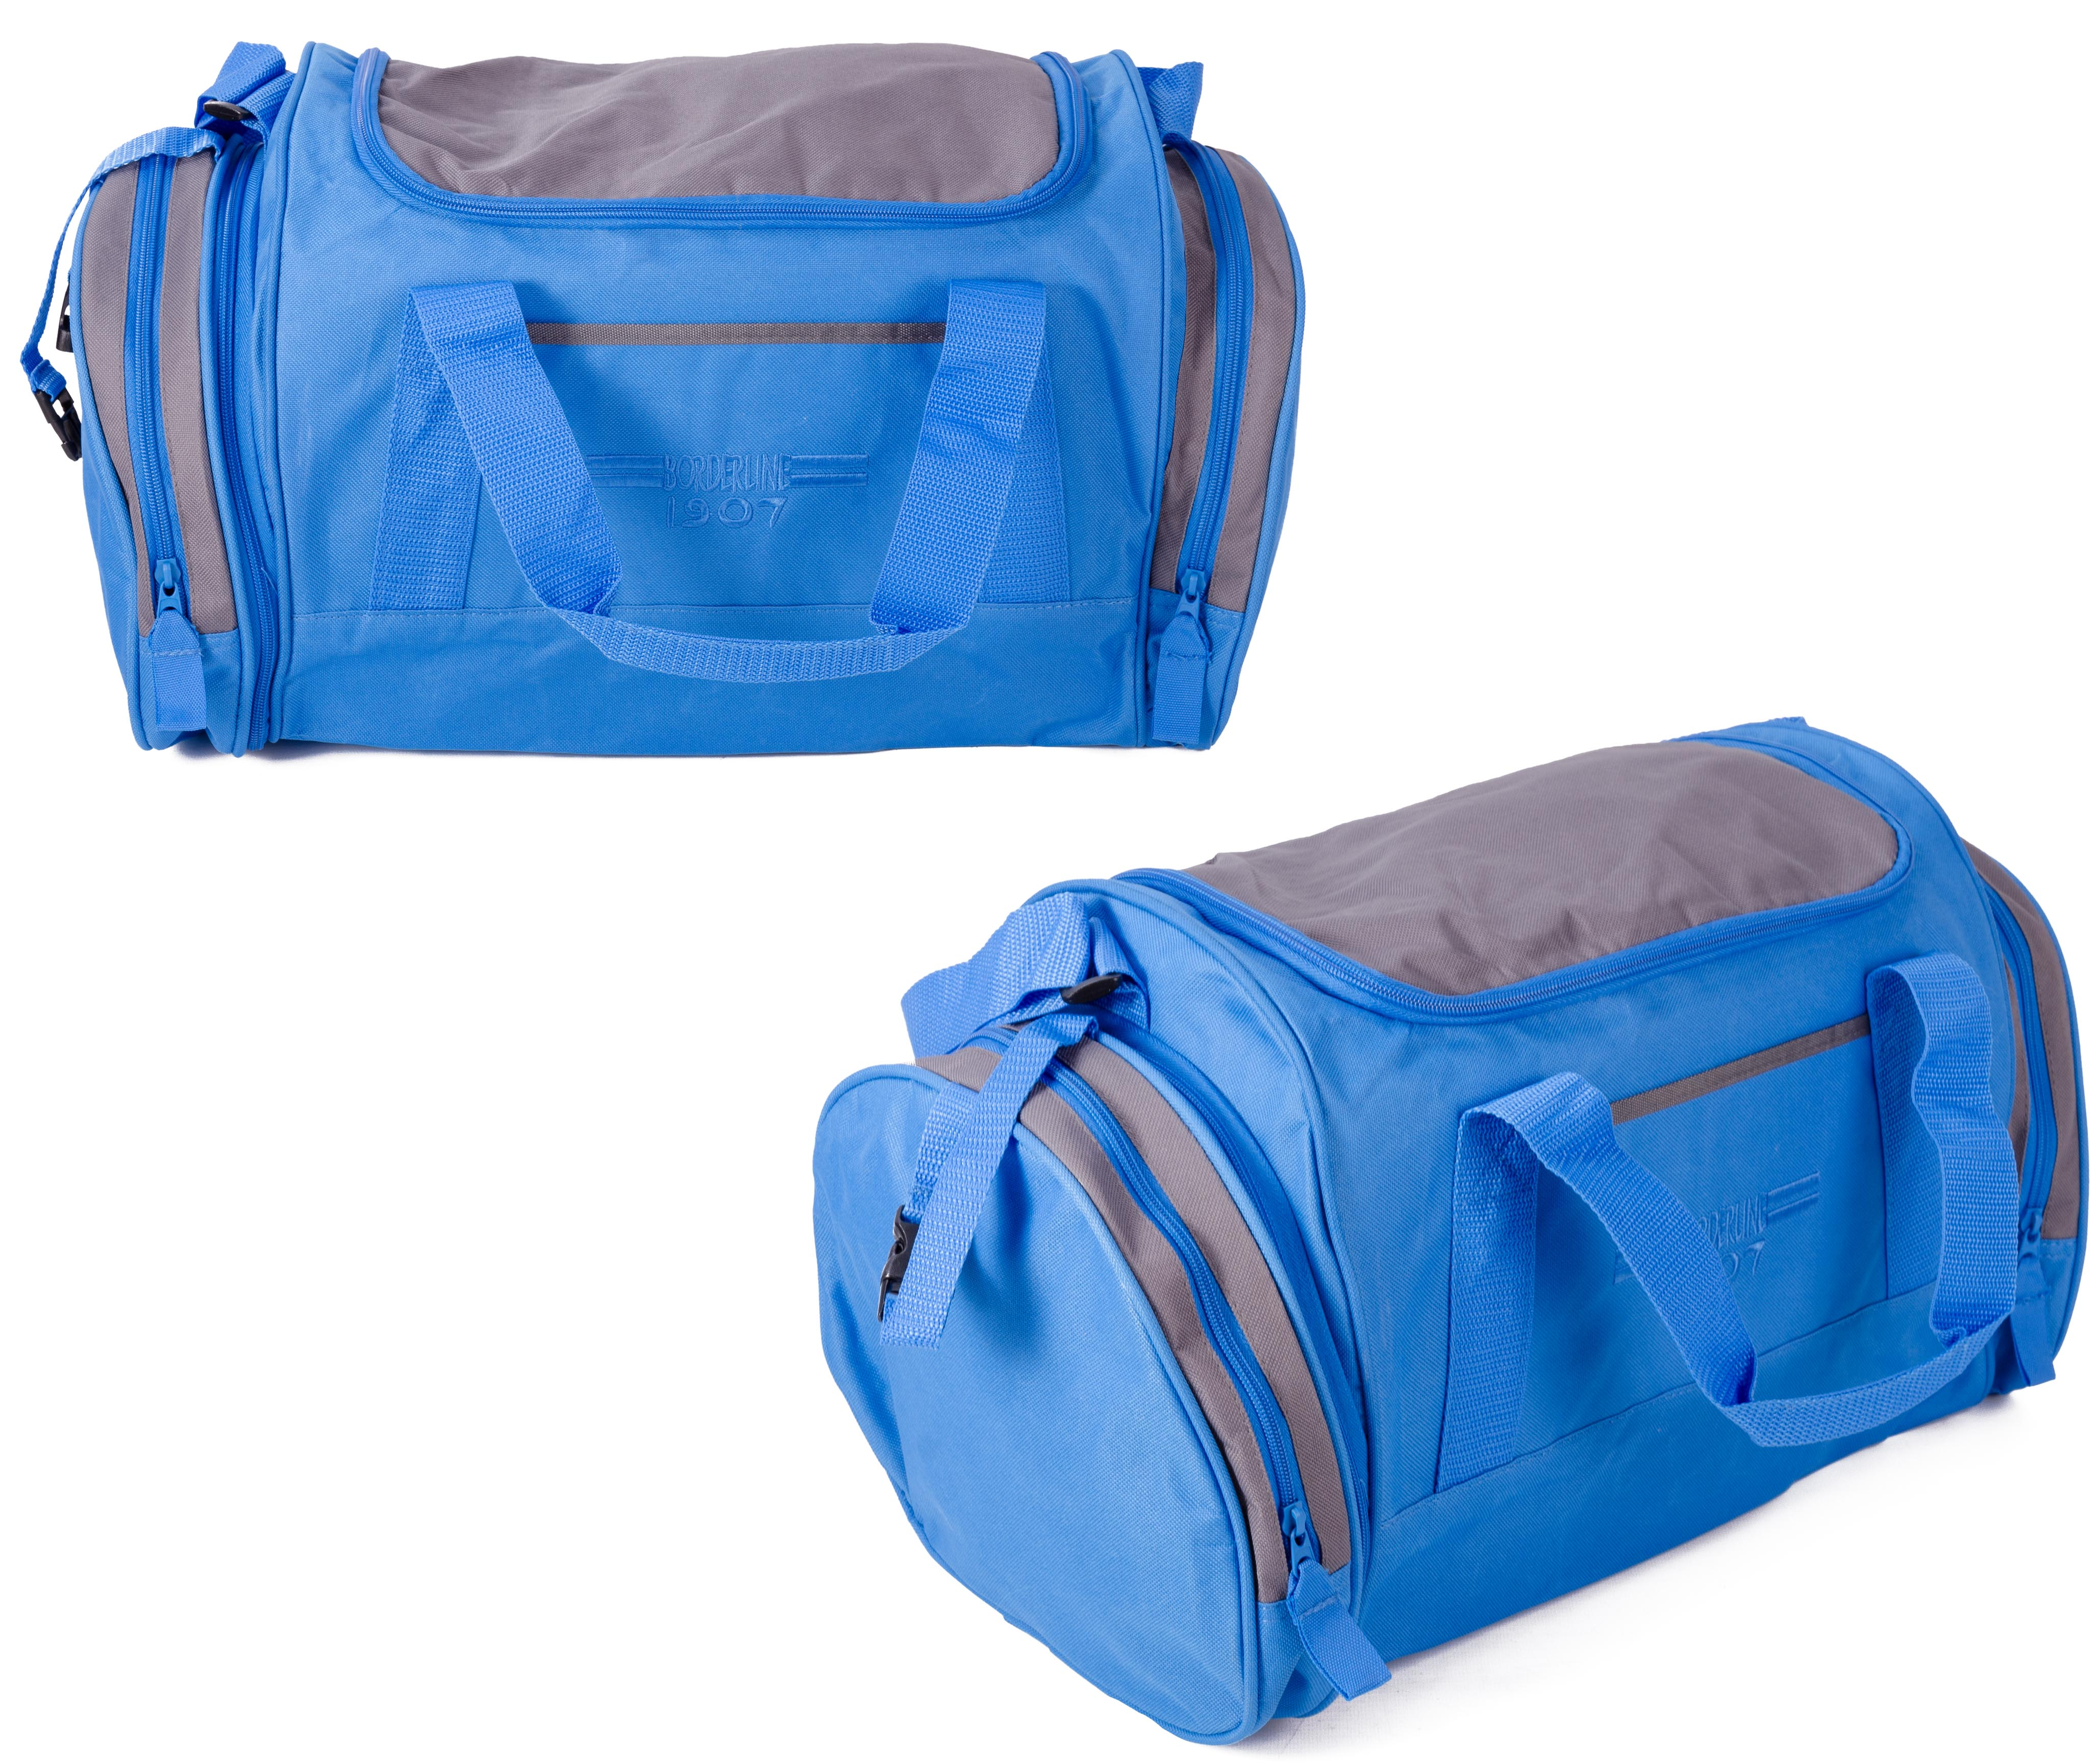 JBSB07 BLUE AND GREY HOLDALL